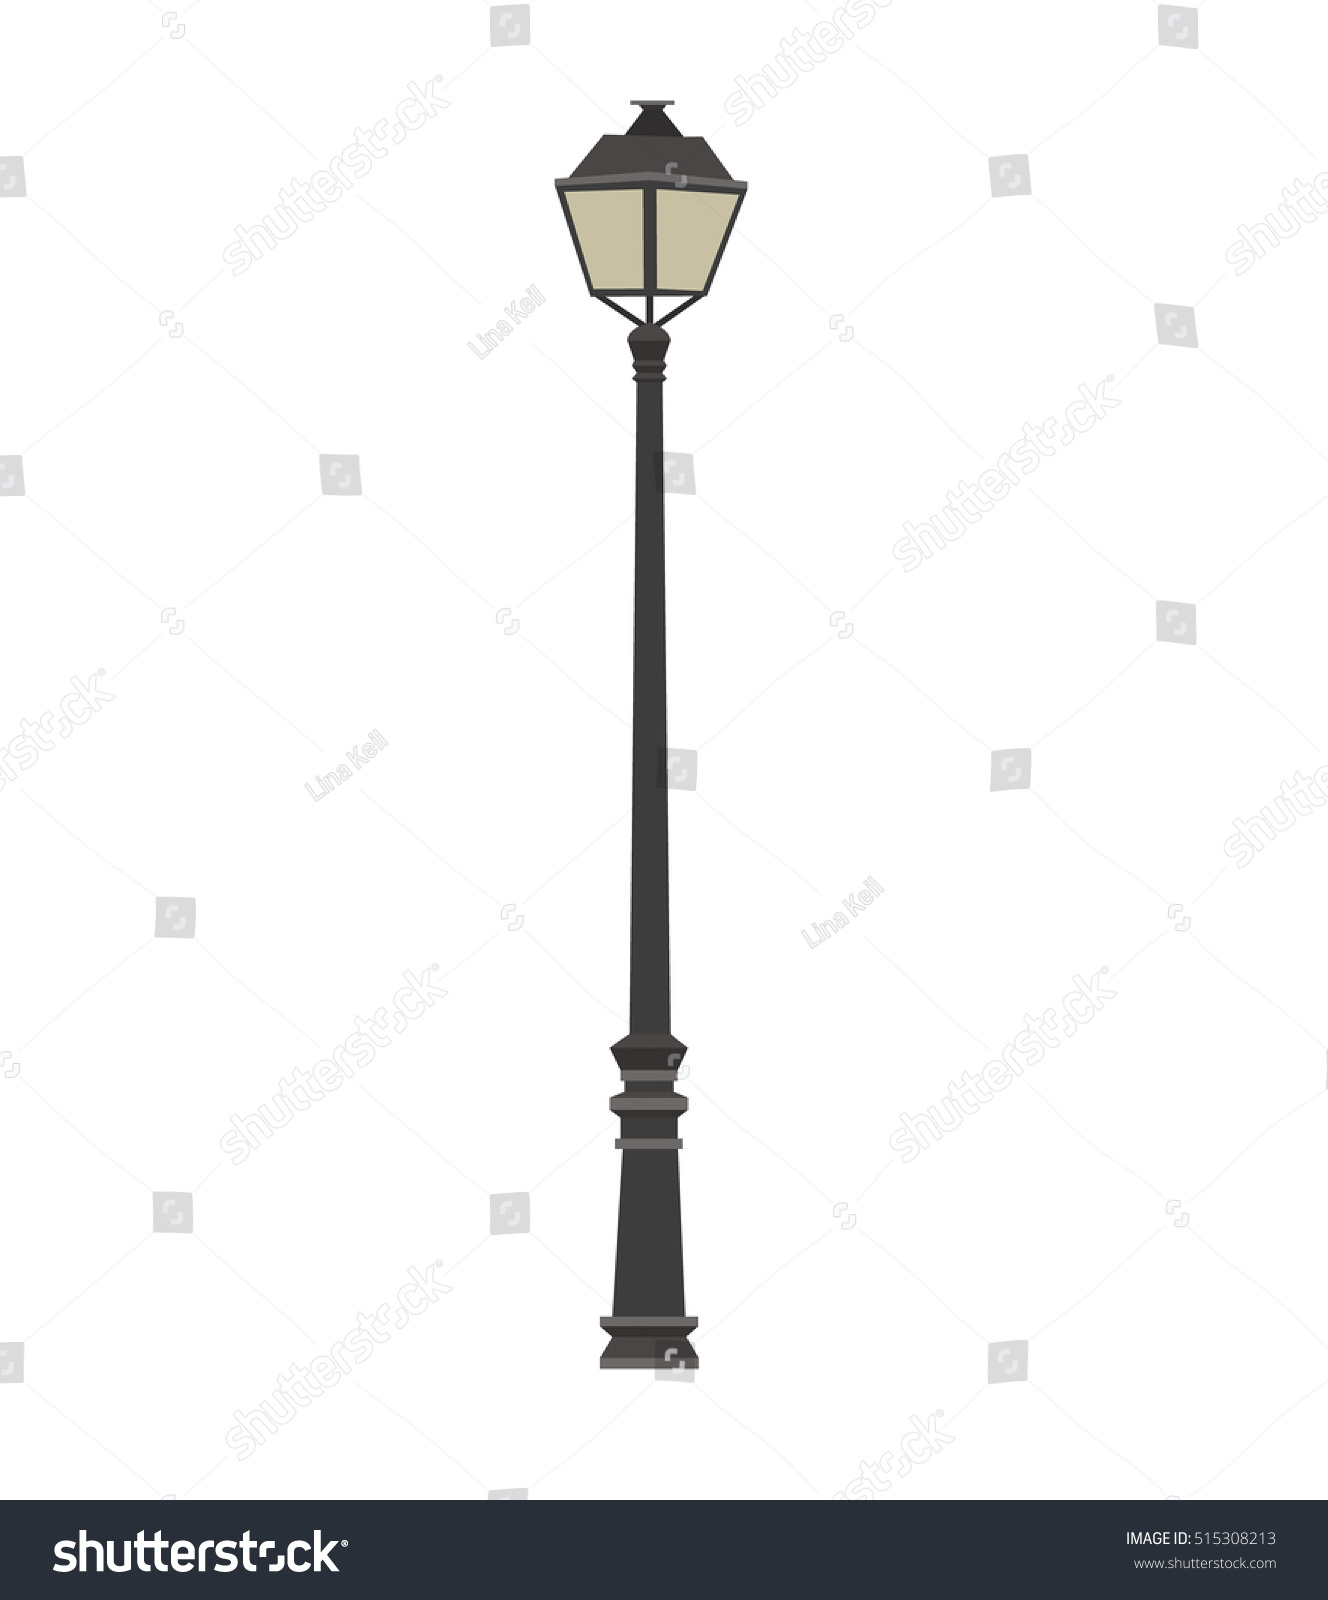 Lamp Lamppost Vector Illustration Street Lamp Stock Vector HD ... for Street Lamp Post Vector  45ifm